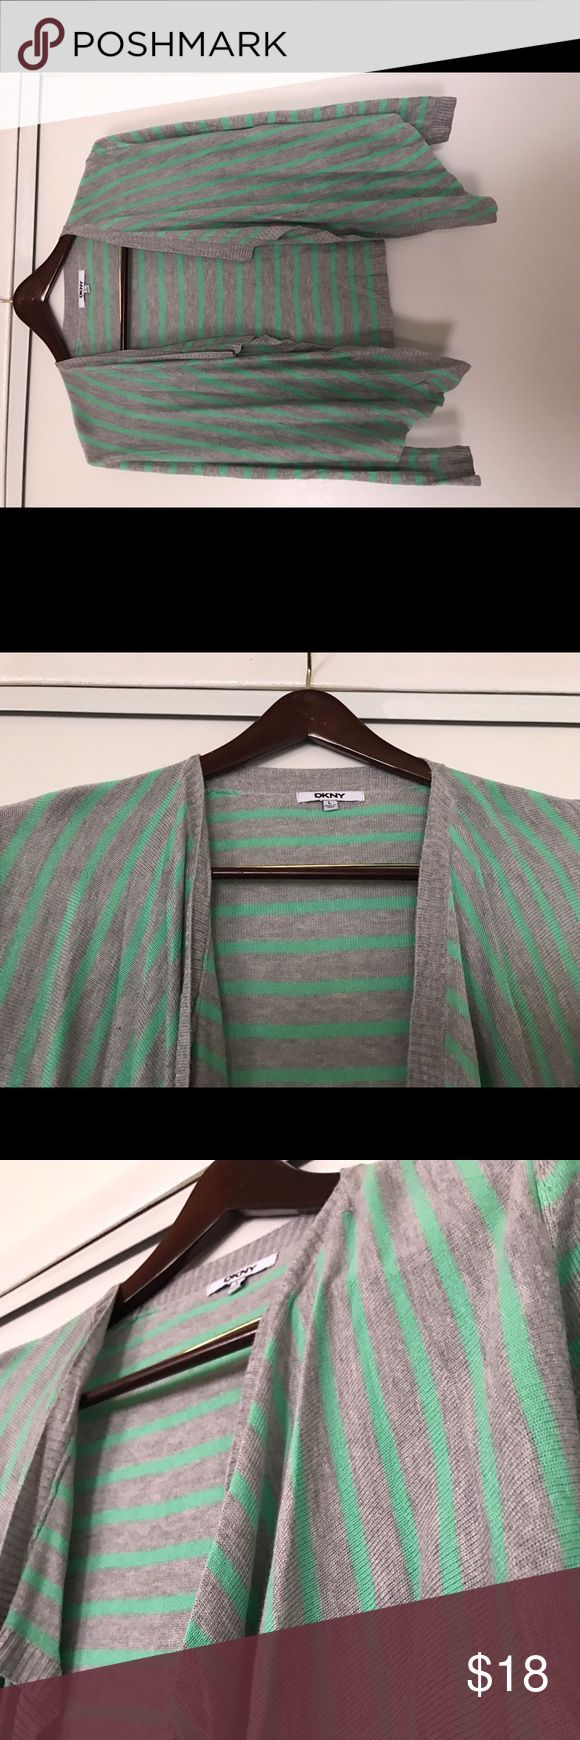 DKNY Open Front Cardigan Gently used, green & grey striped lightweight open front cardigan. DKNY Sweaters Cardigans